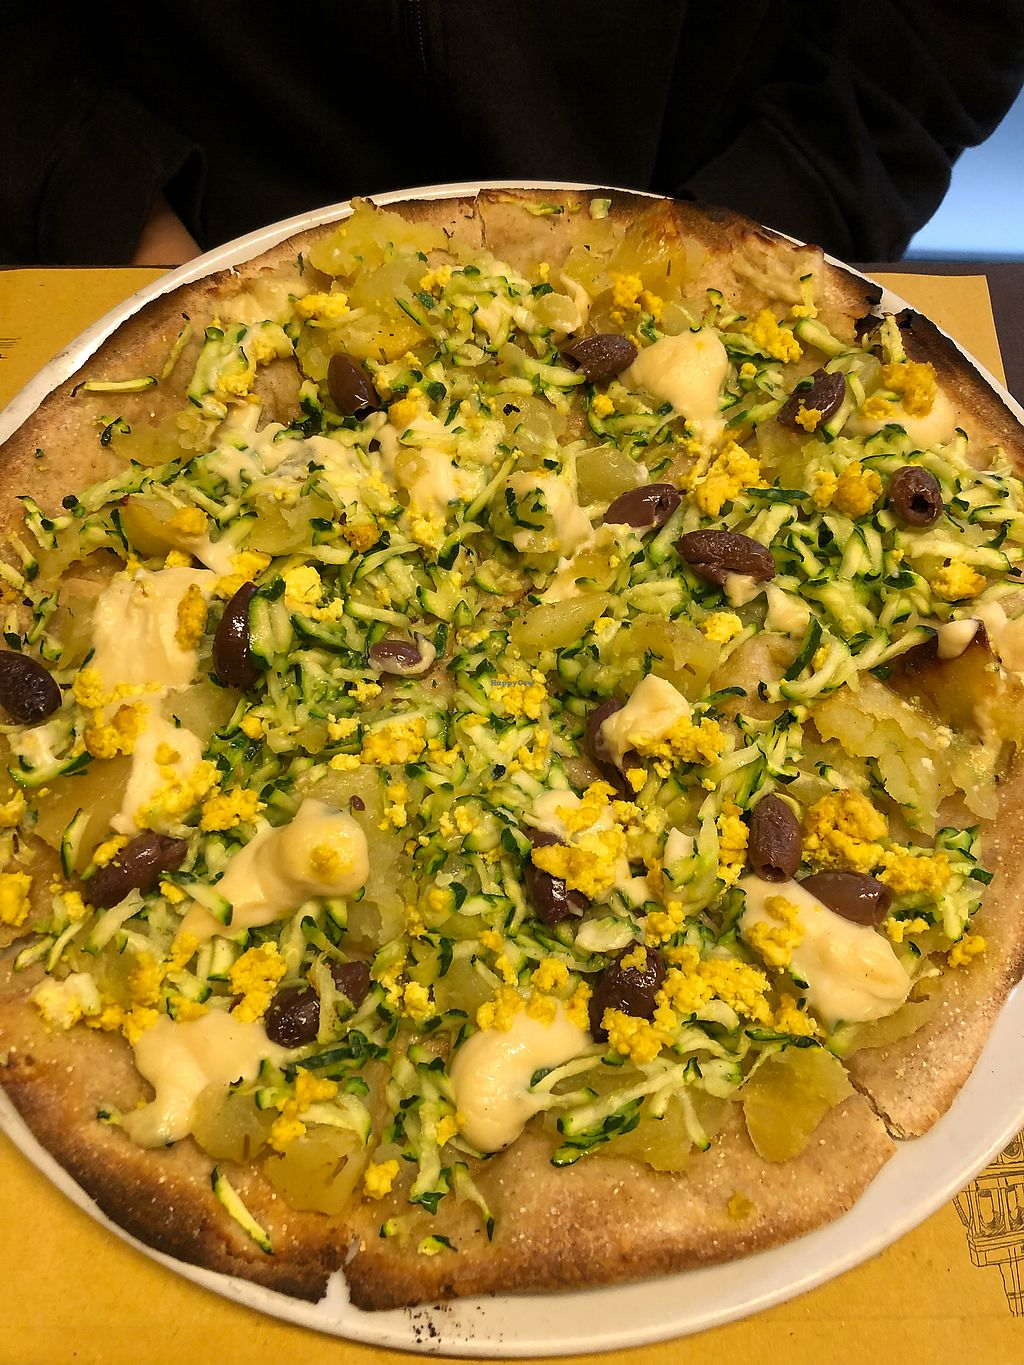 "Photo of Rifugio Romano  by <a href=""/members/profile/_hael"">_hael</a> <br/>Broccoli, Potato & Seitan Vegan Pizza <br/> February 27, 2018  - <a href='/contact/abuse/image/72423/364520'>Report</a>"